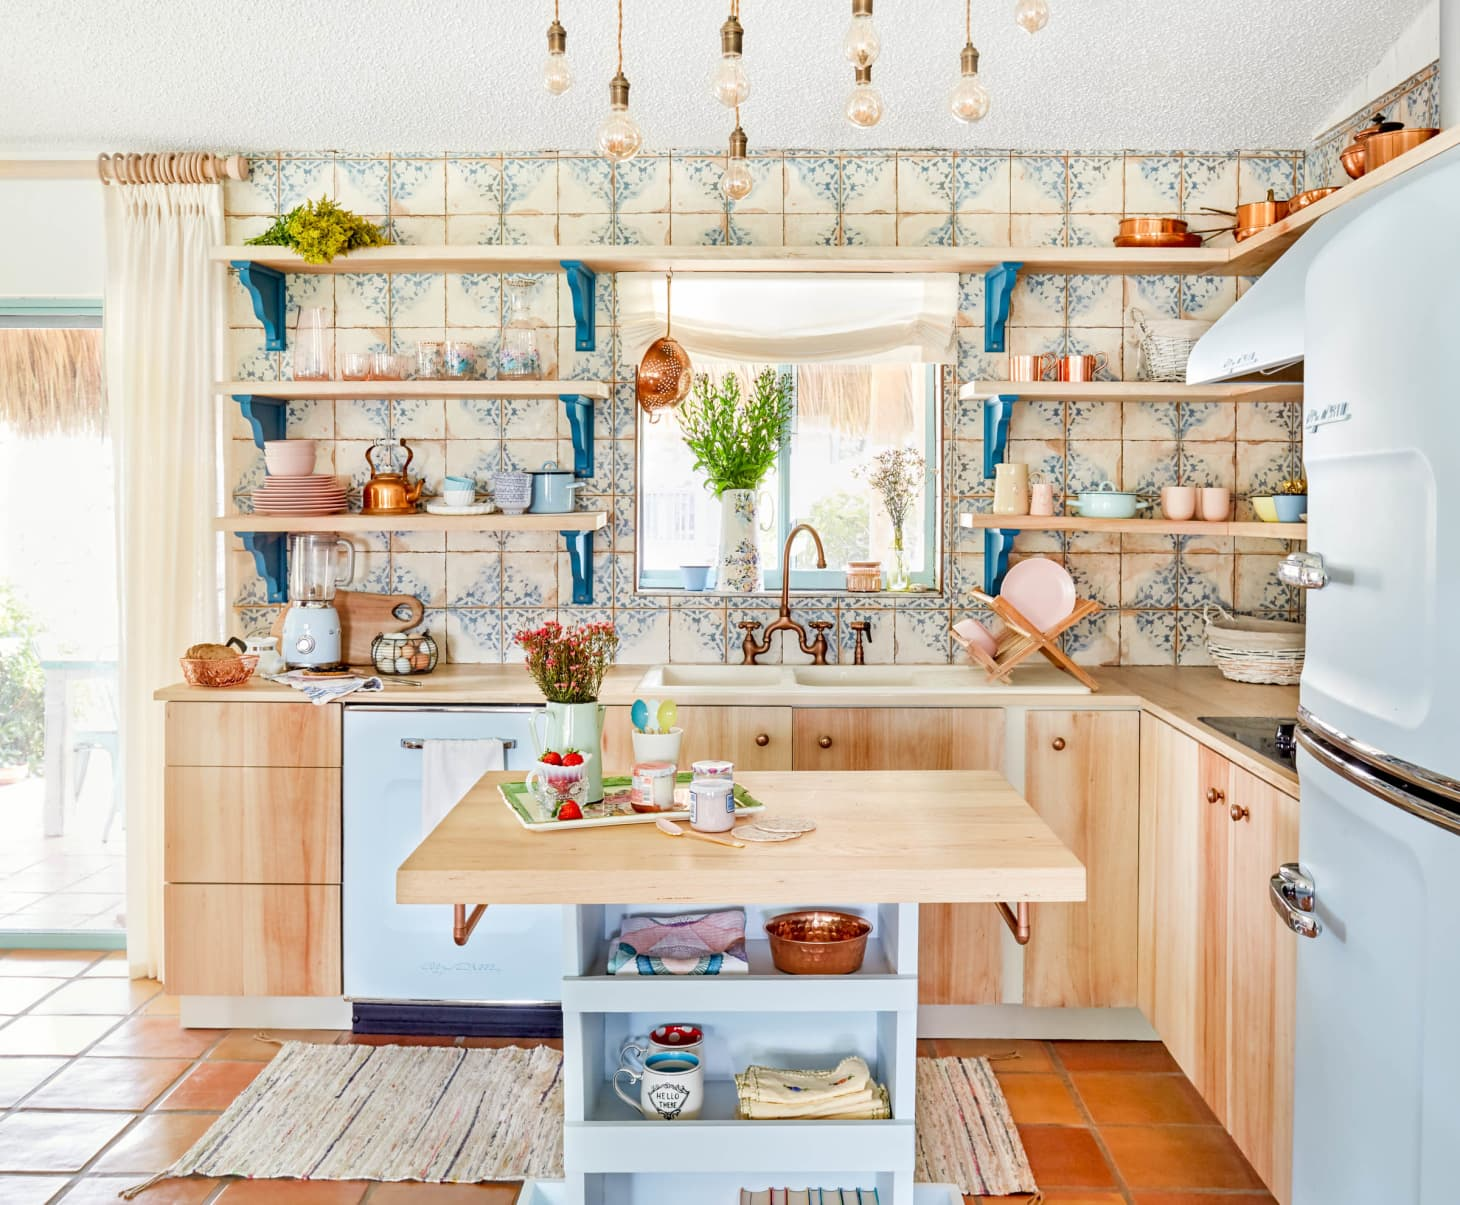 12 Country Kitchen Ideas How To Give A Rustic Style To Your